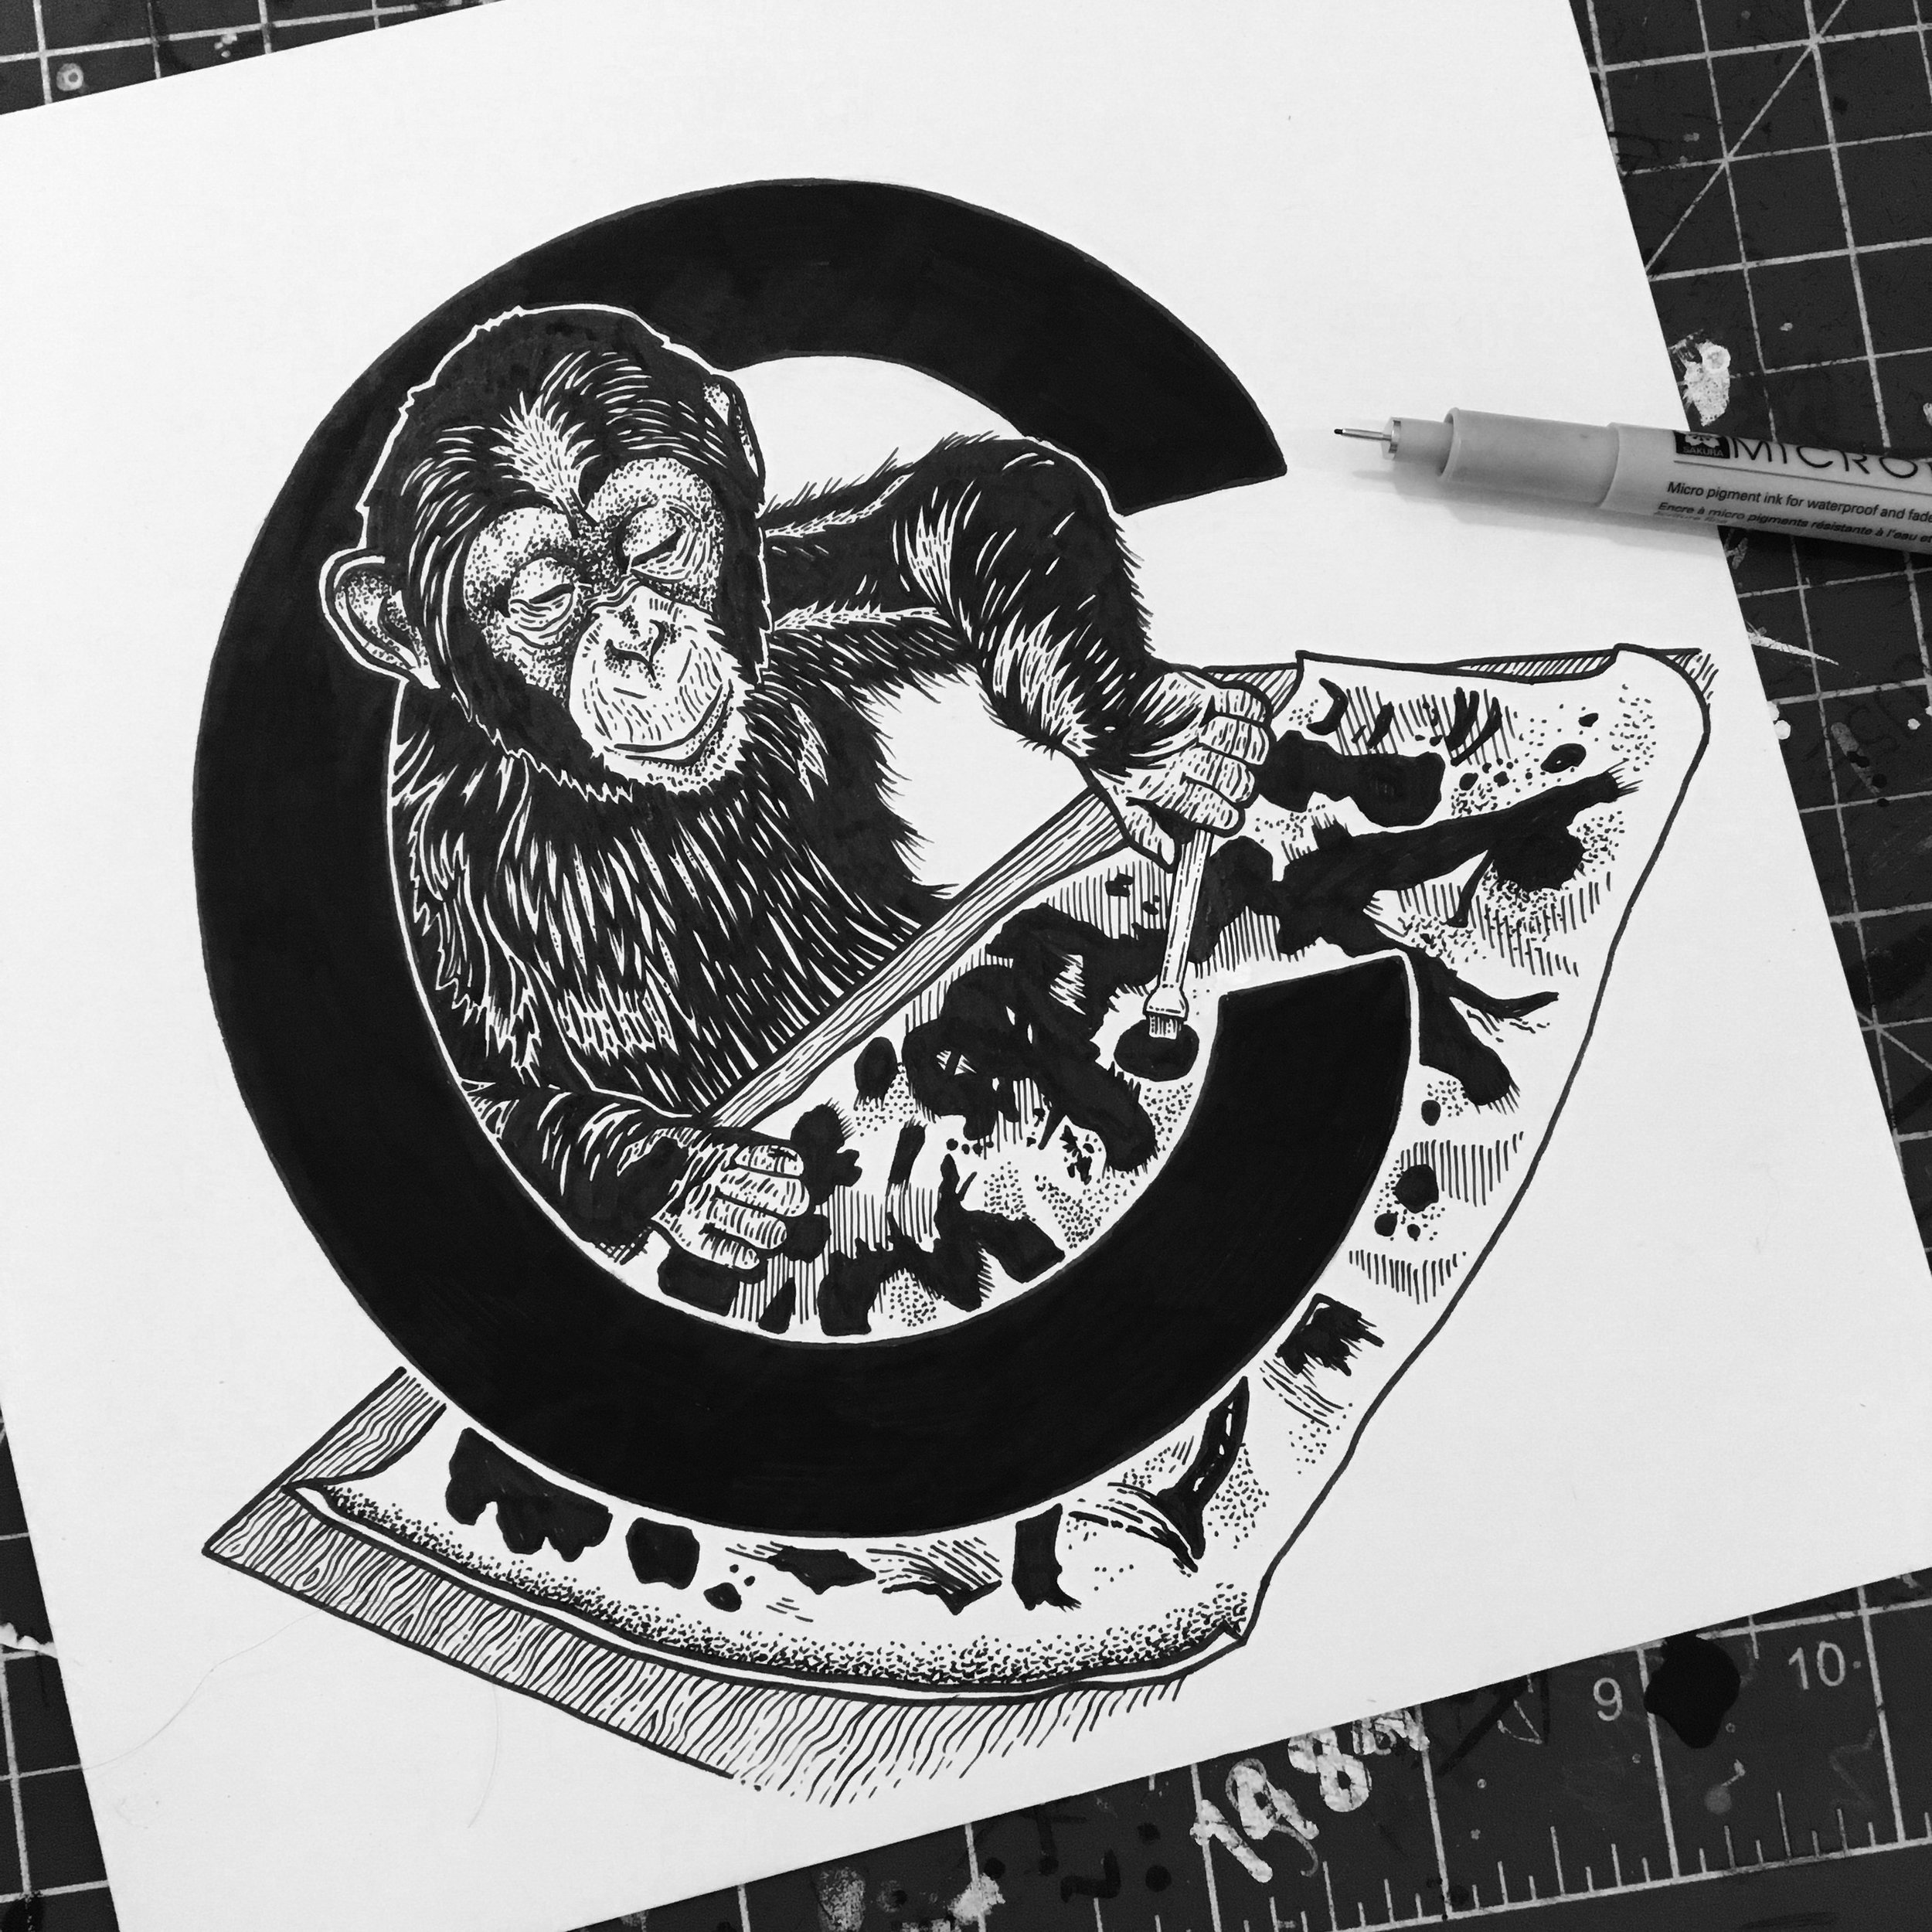 Congo the Chimpanzee - famous for being able to draw and paint.